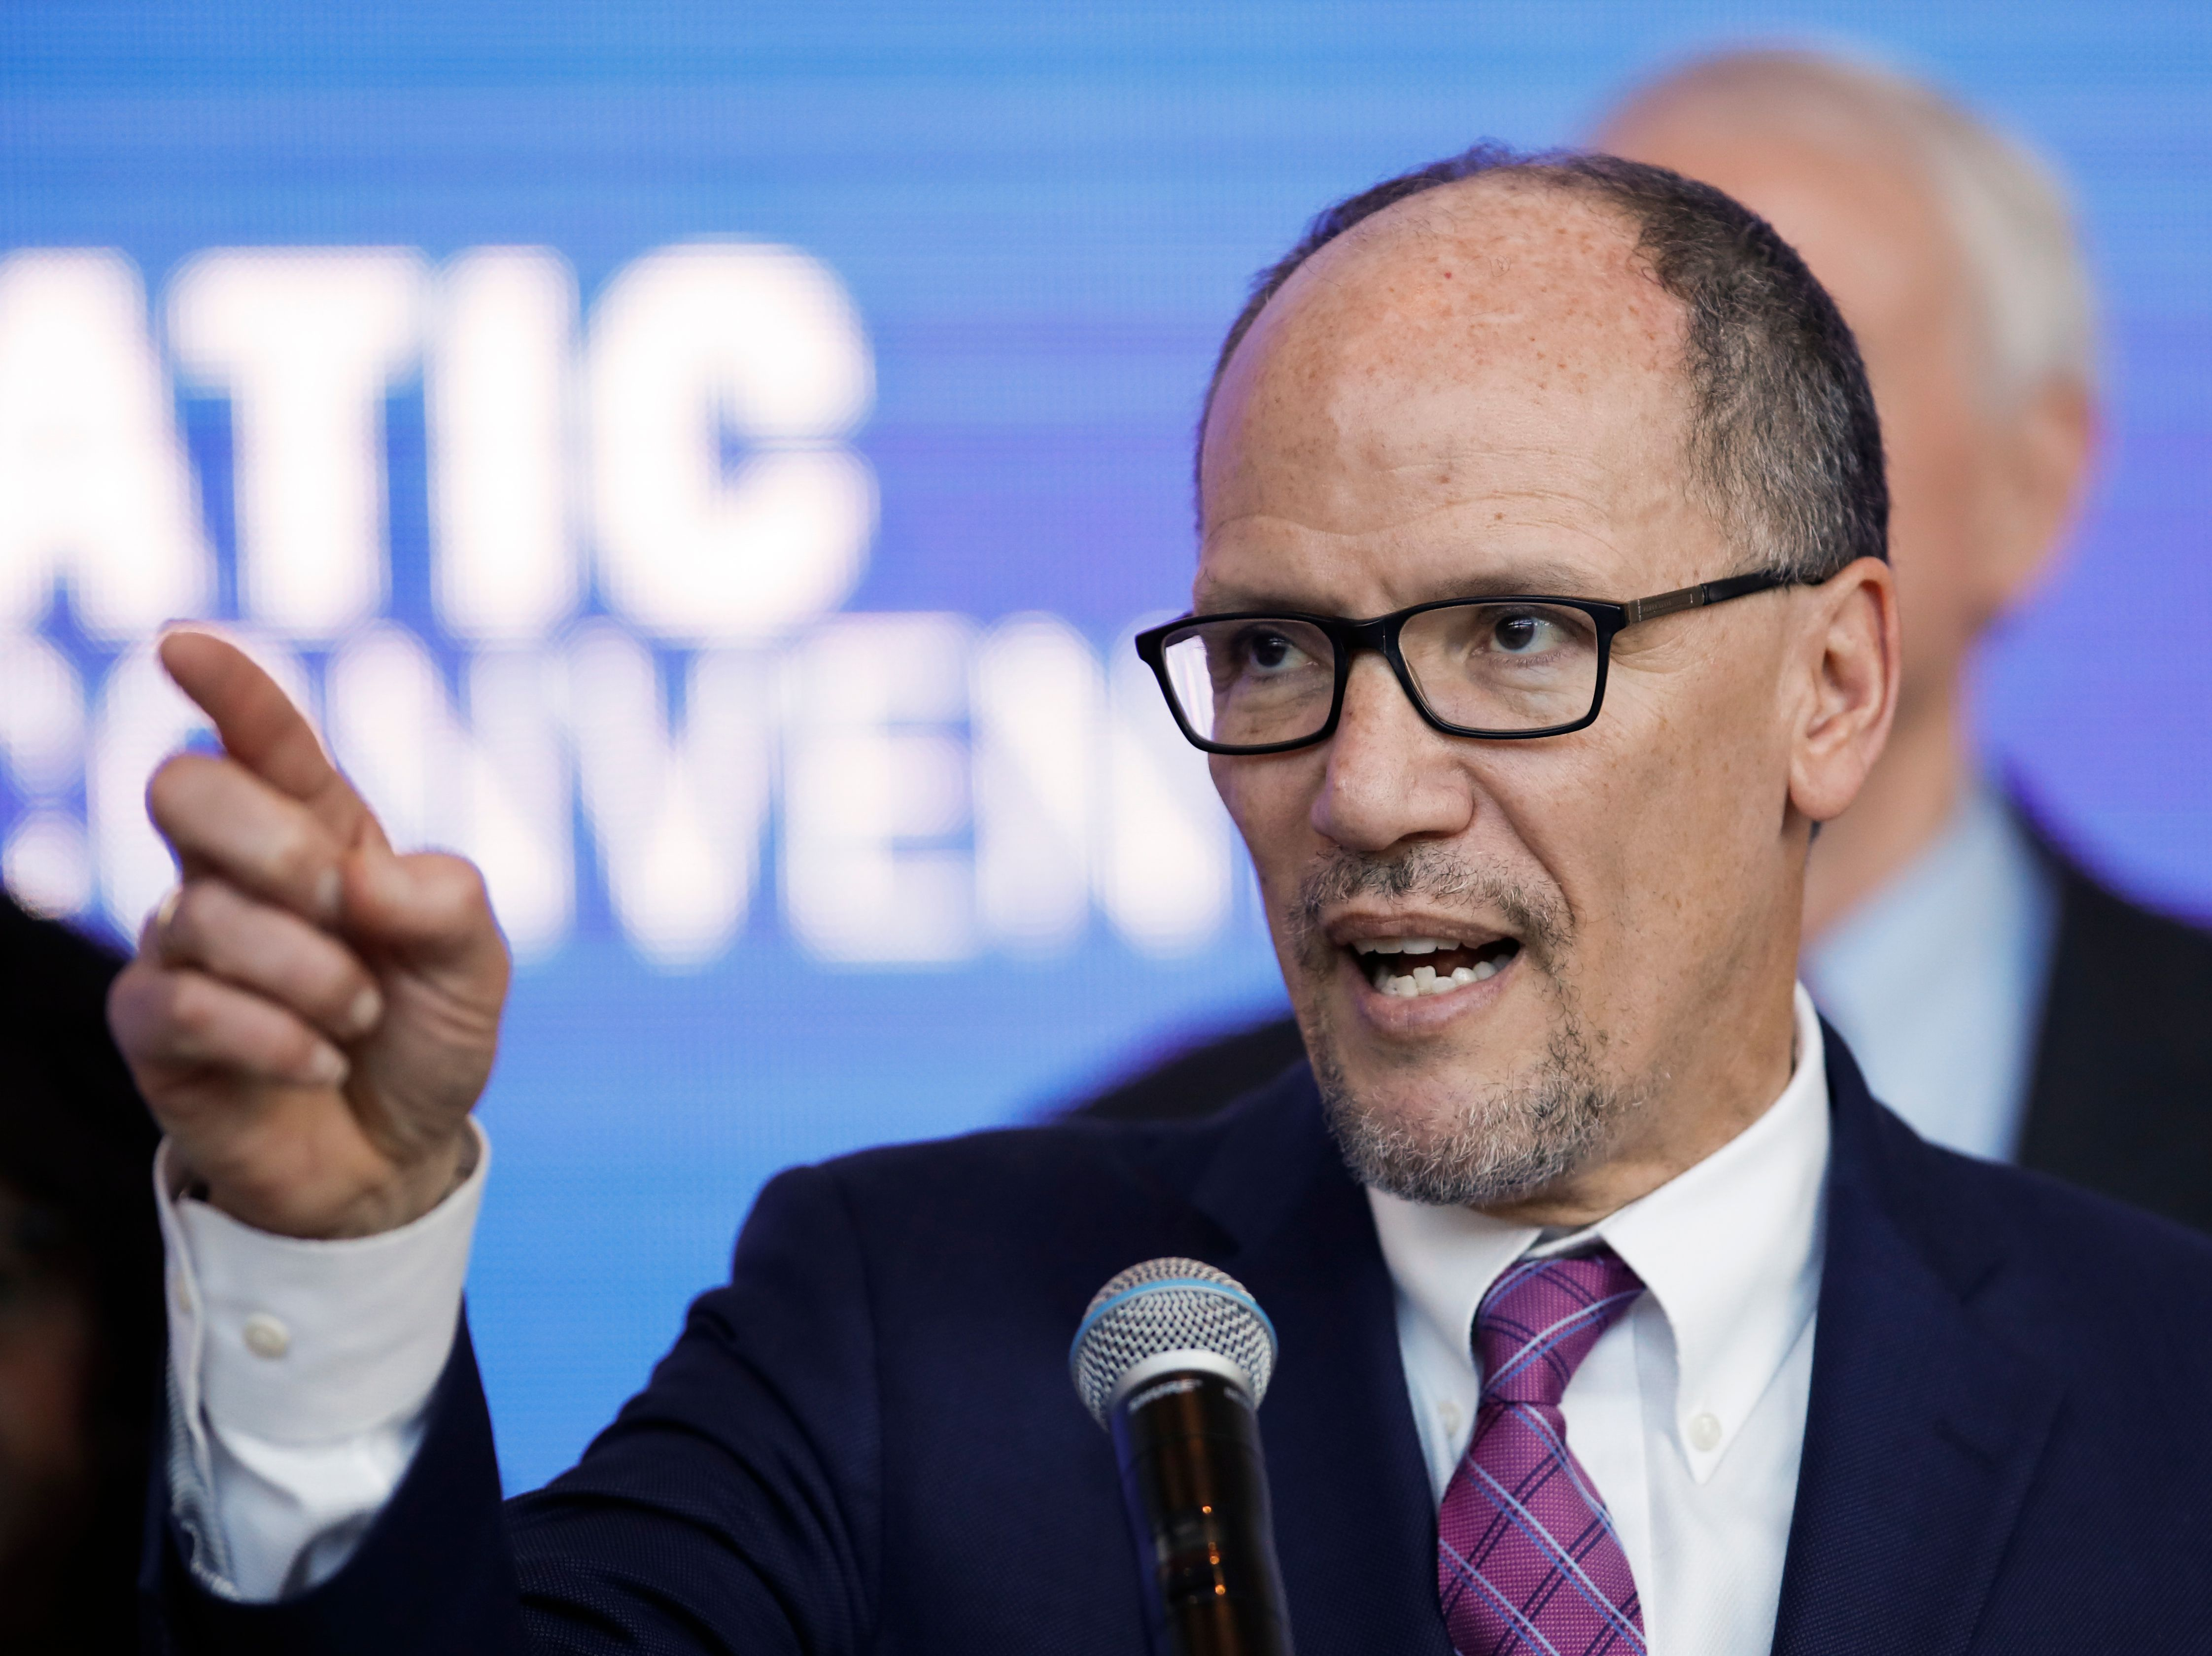 Chair of the Democratic National Committee Tom Perez speaks during a press conference at the Fiserv Forum in Milwaukee, Wisconsin on March 11, 2019, to announce the selection of Milwaukee as the 2020 Democratic National Convention host city. (KAMIL KRZACZYNSKI/AFP/Getty Images)